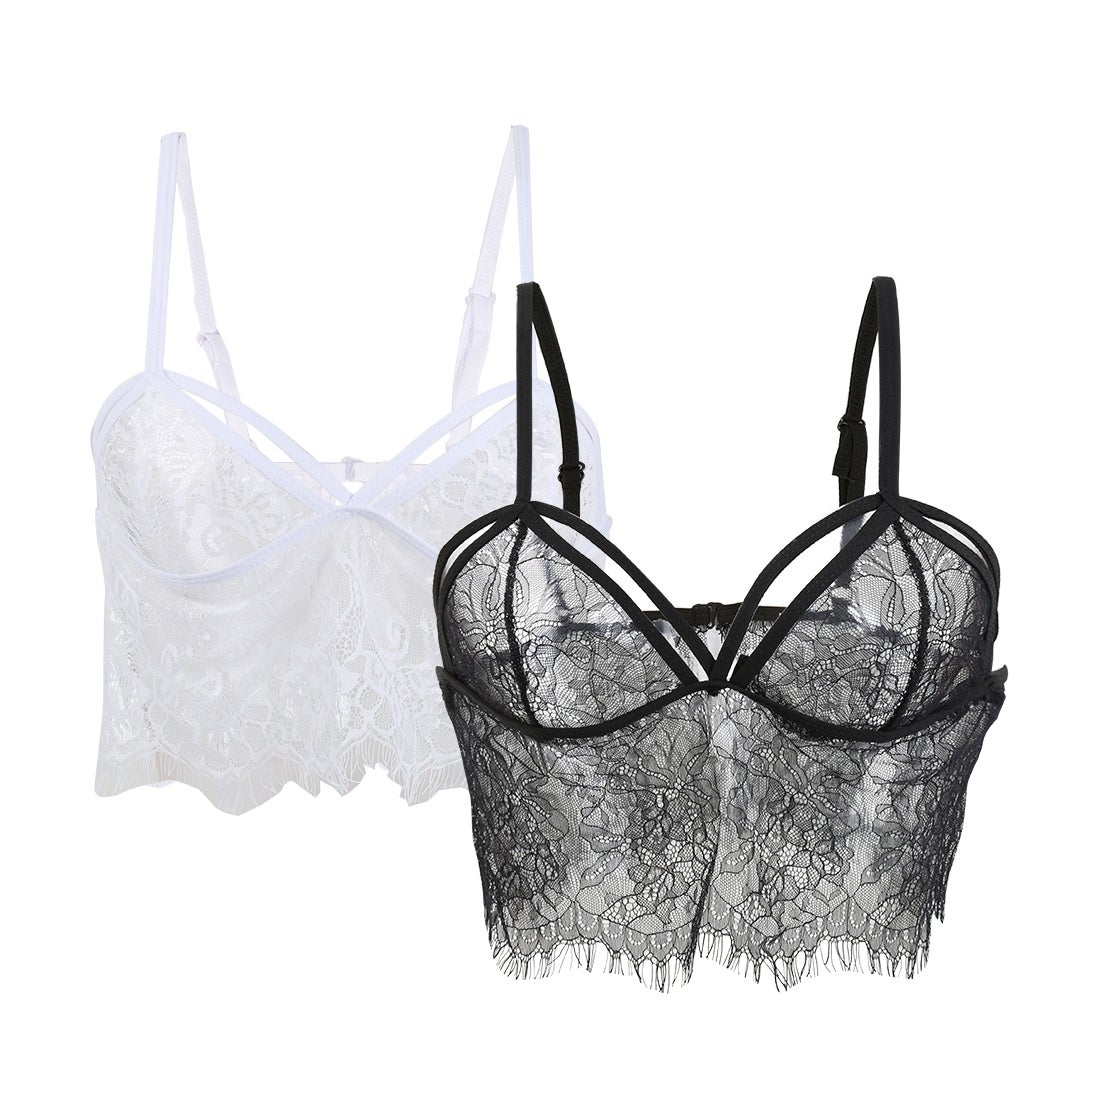 d129deb2f0271 Shop Women 2 Pack Floral Sheer Full Lace Bralette Crop Top Cami Bra - On  Sale - Free Shipping On Orders Over  45 - Overstock - 23559018